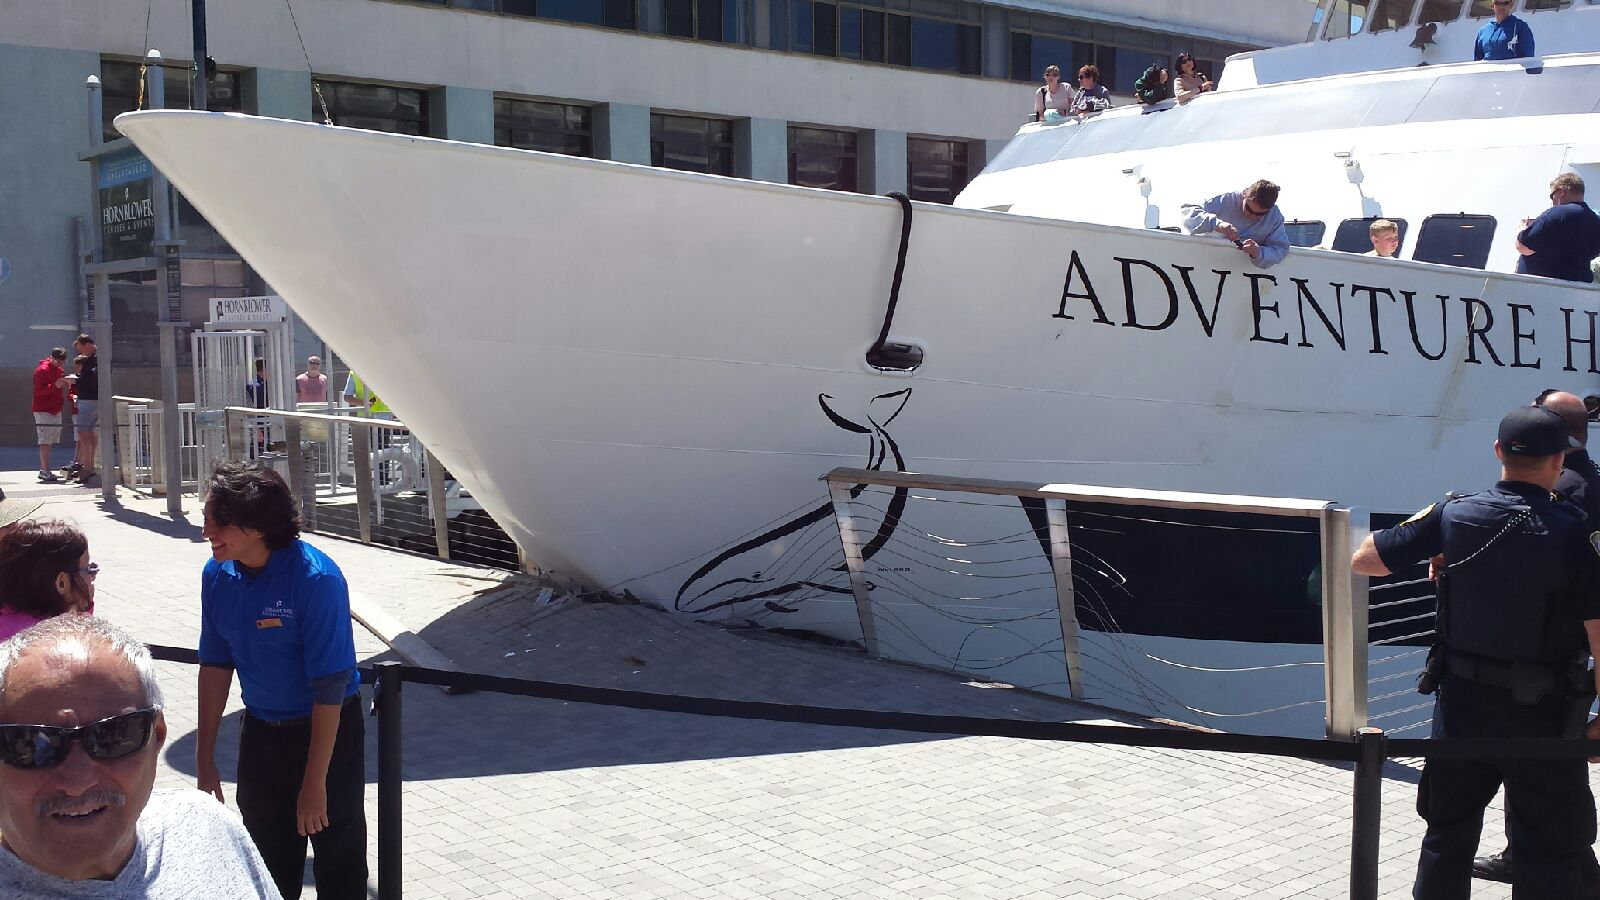 Three people were taken to the hospital after a Hornblower cruise ship smashed into Broadway Pier along San Diego's scenic Embarcadero area.